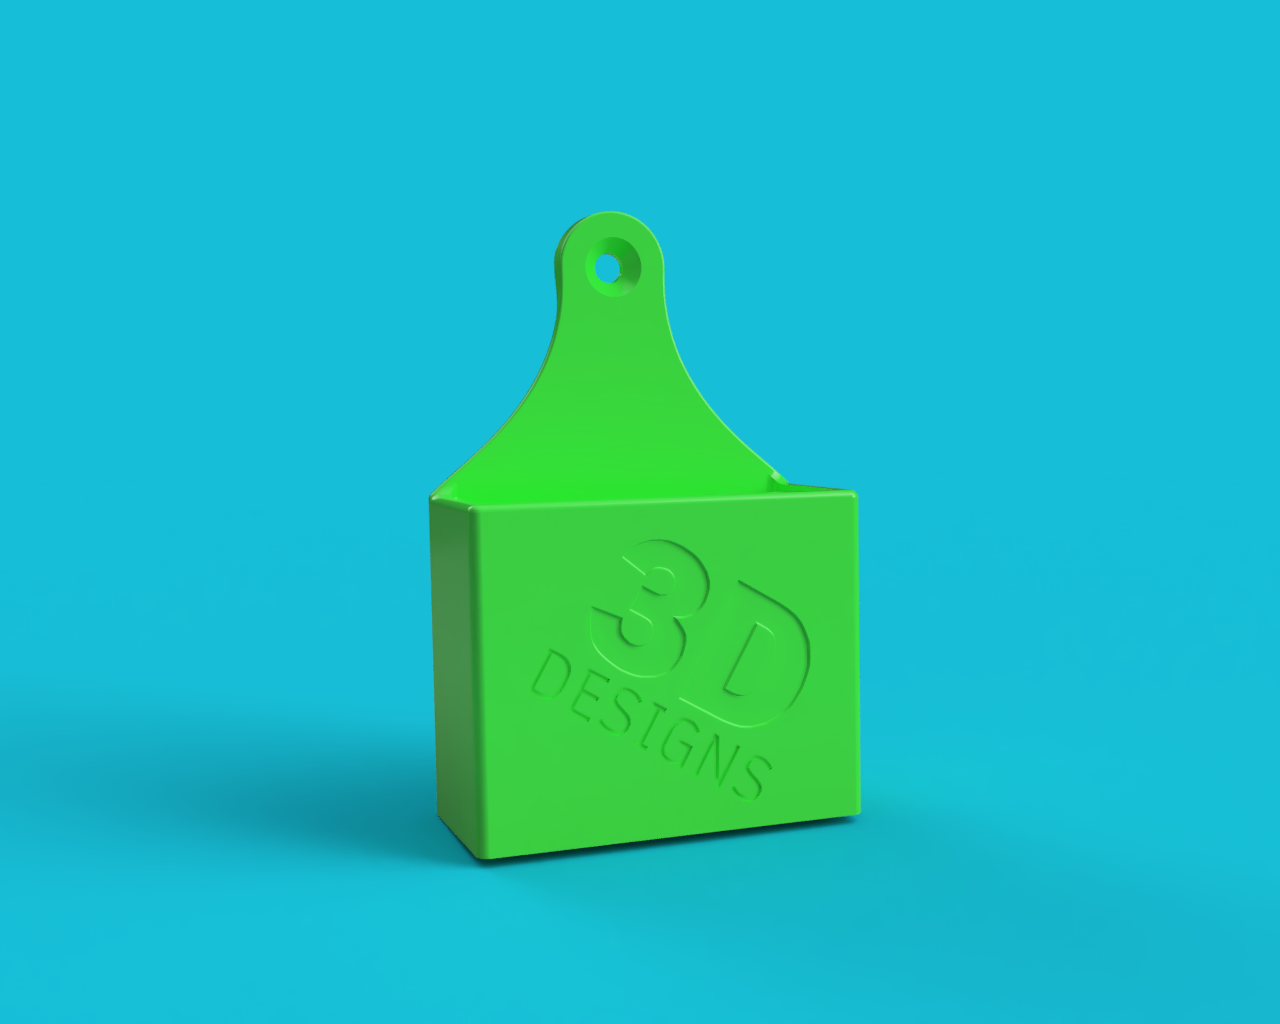 Remore_Control_Wall_Holder_2019-Sep-28_08-06-33AM-000_CustomizedView7376620330.png Download free STL file Mini remote control wall holder • 3D printer object, 3D-Designs